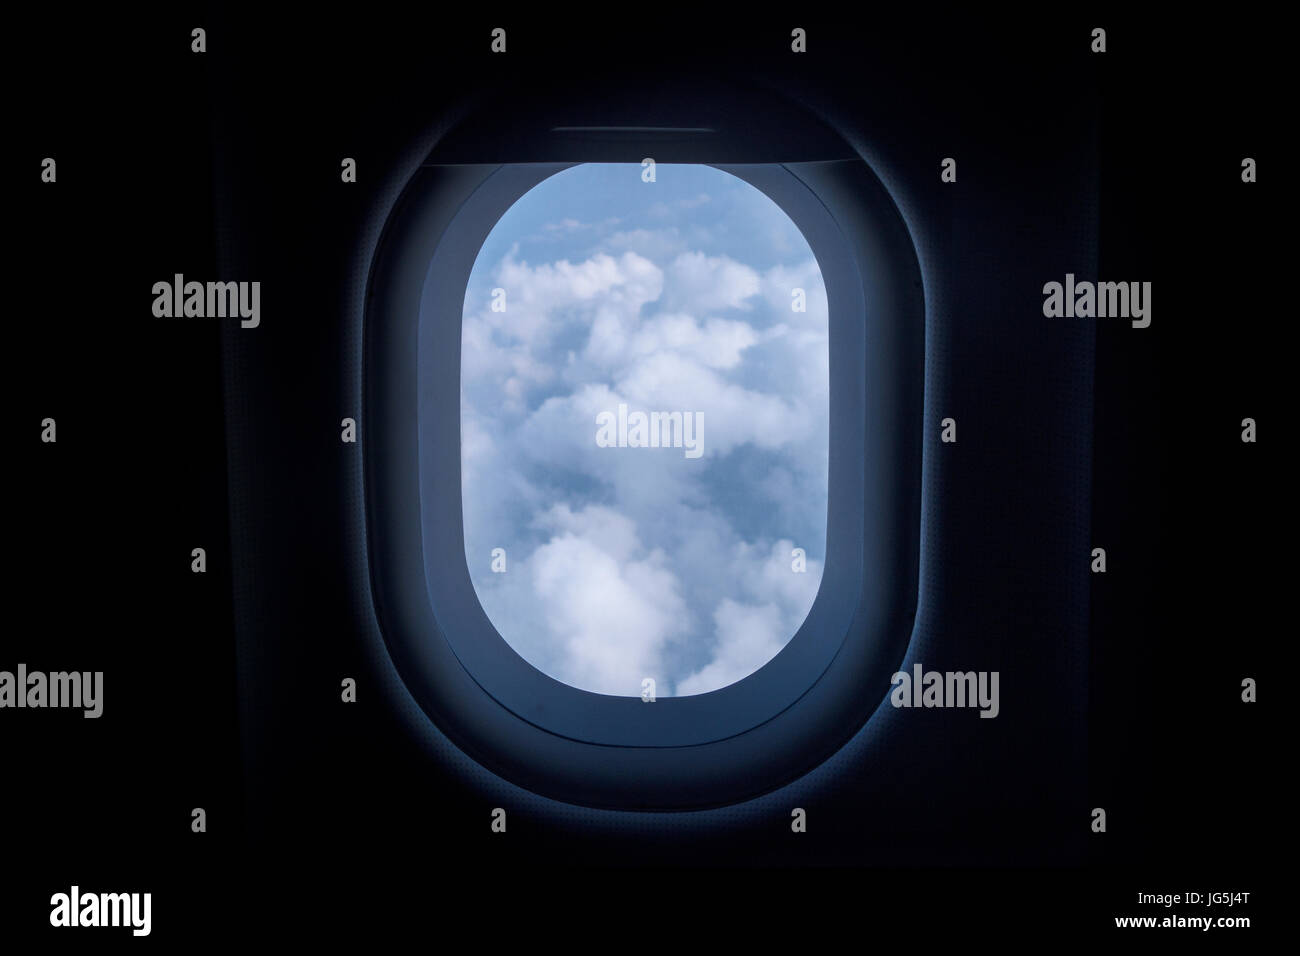 passenger airplane aircraft window blue sky and clouds Stock Photo